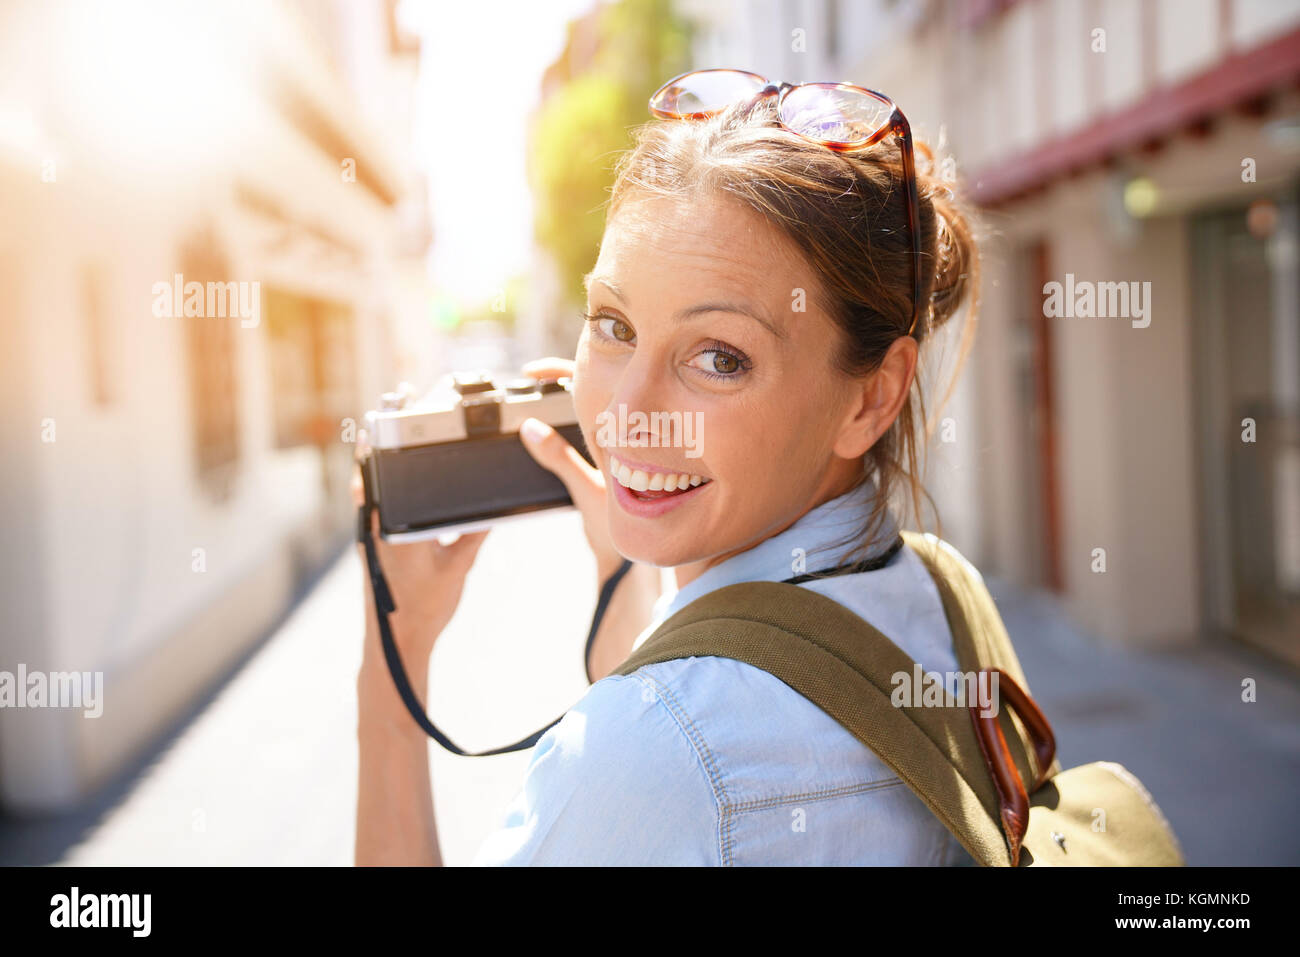 Portrait of tourist taking picture of architectural details - Stock Image